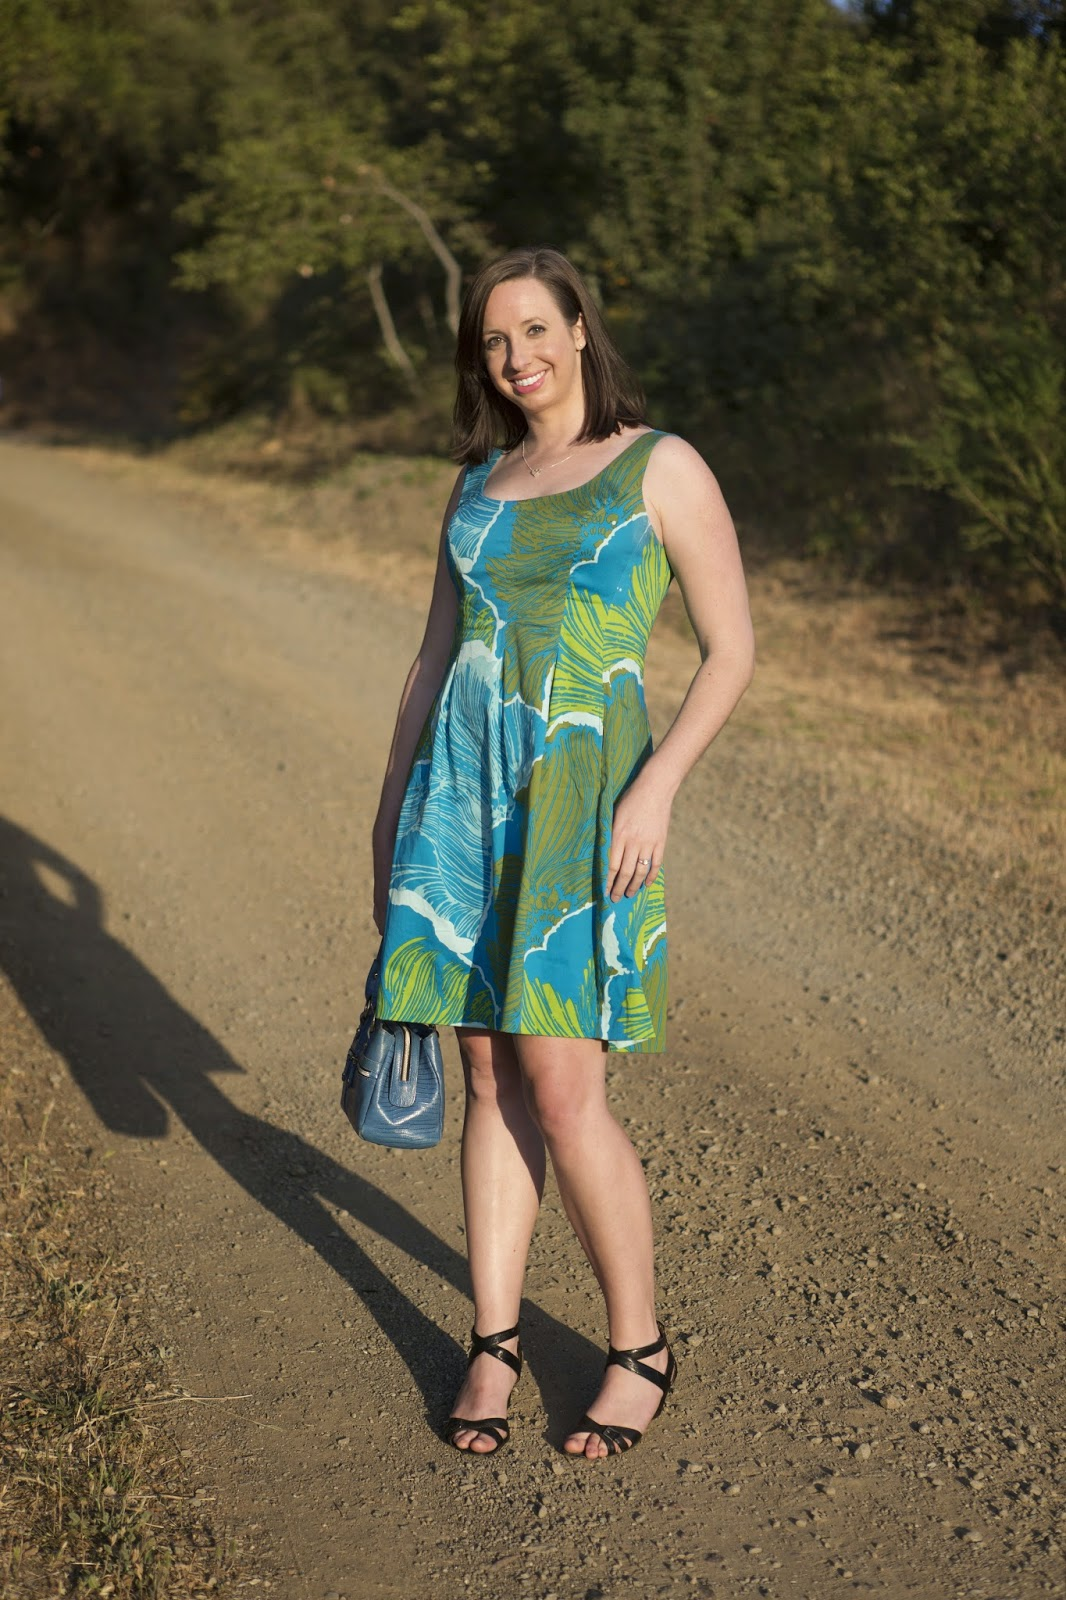 Blue and green Hawaiian island style dress outfit